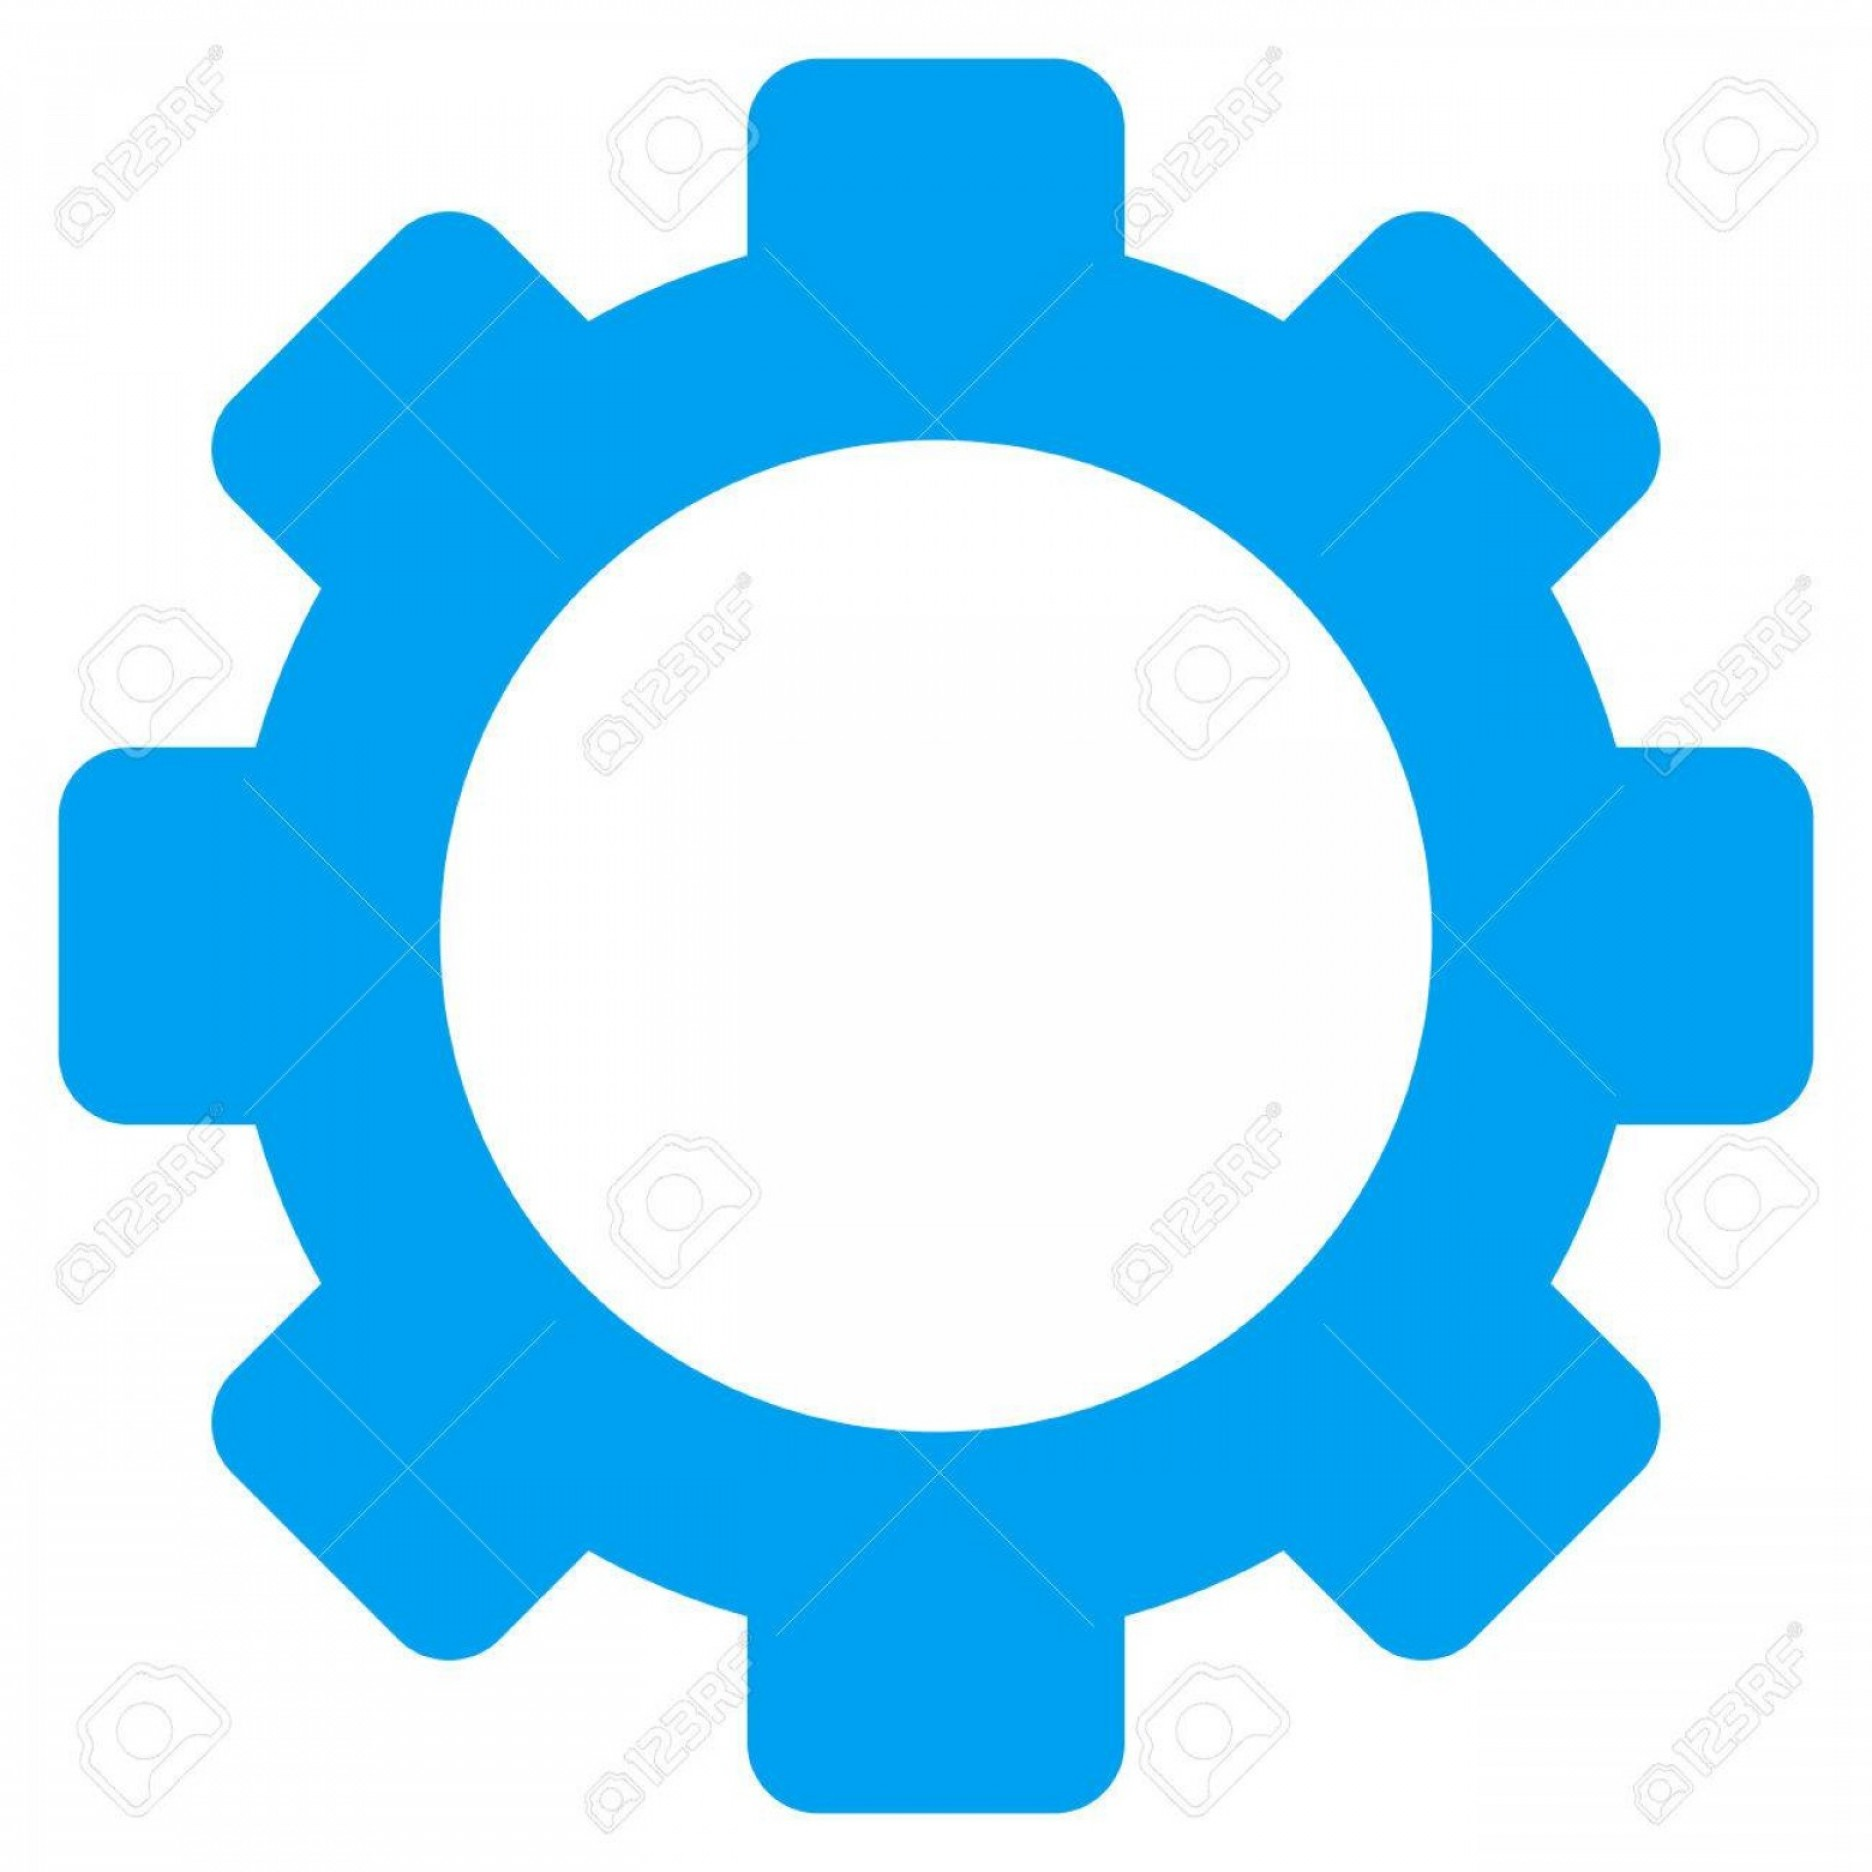 Vector Gear Graphics: Photostock Vector Gear Vector Pictograph Style Is Flat Graphic Symbol Blue Color White Background